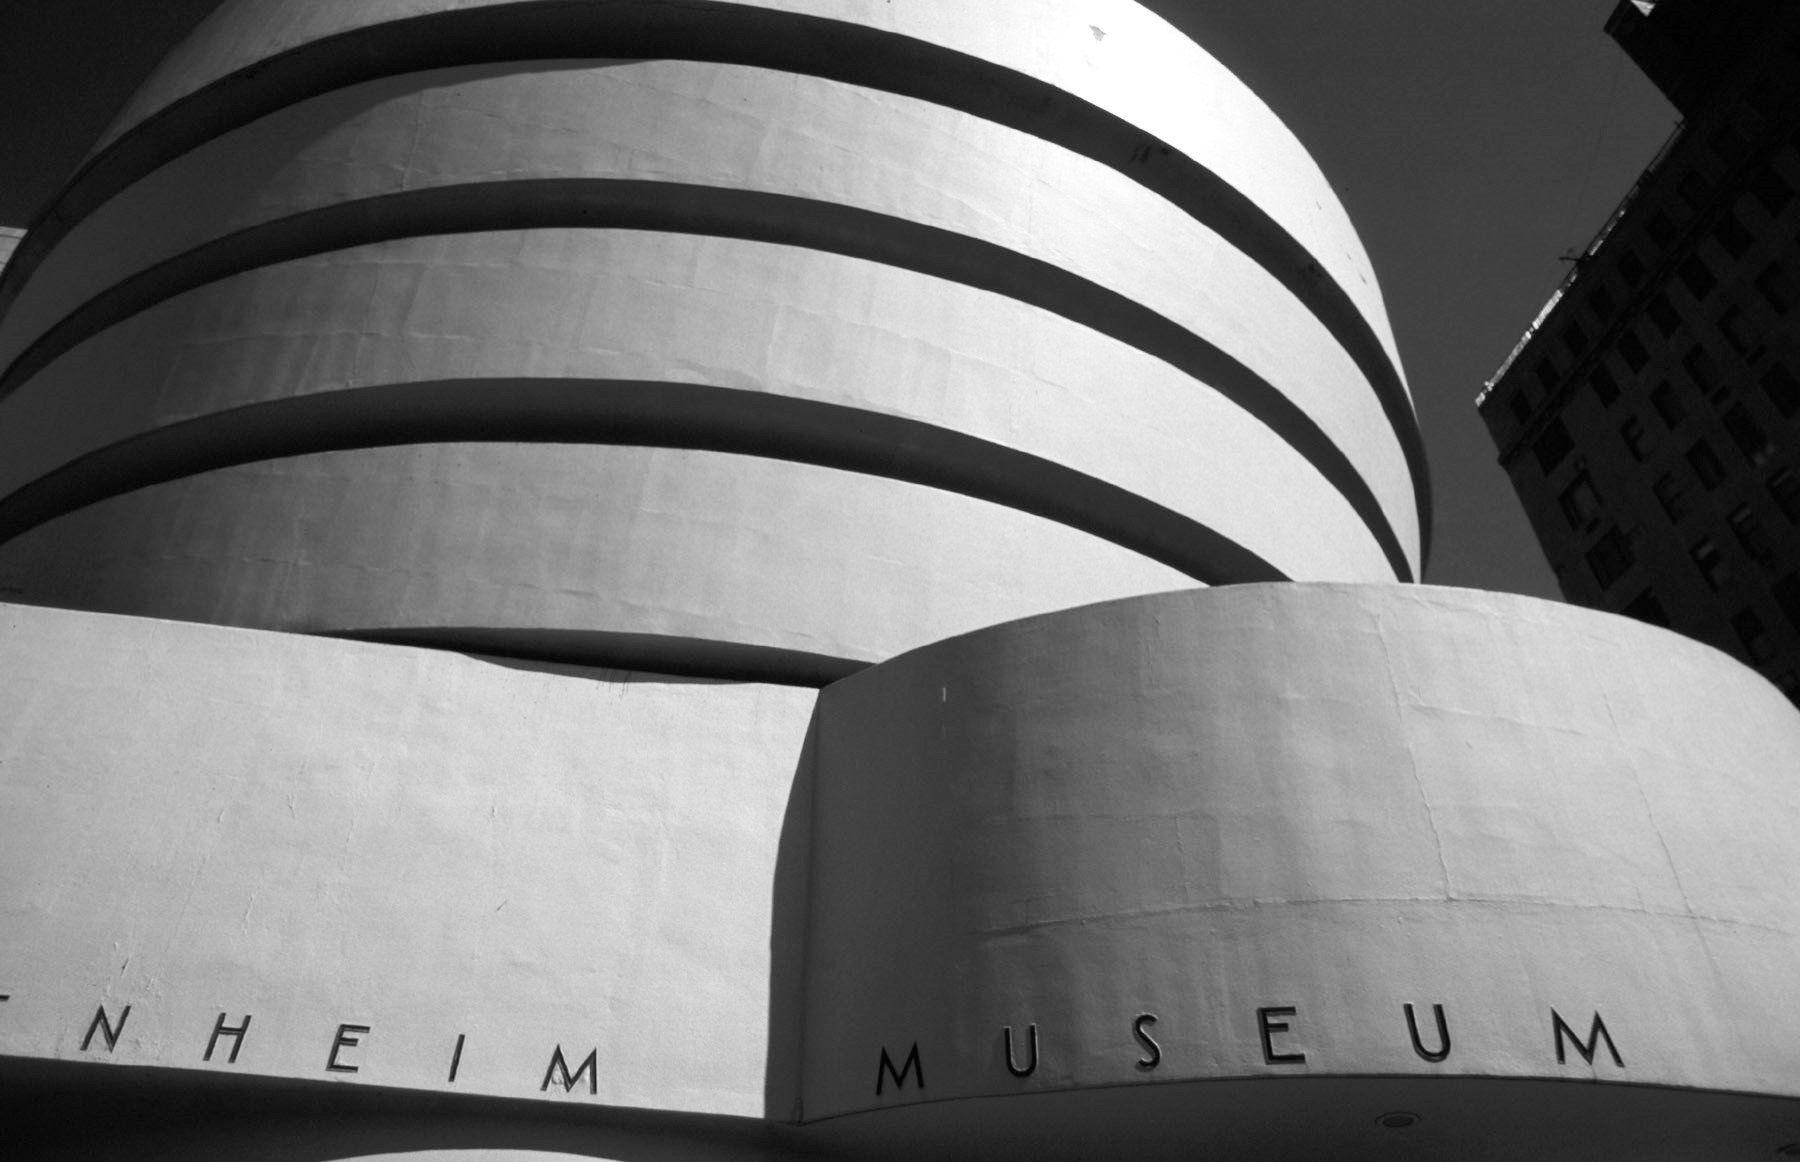 guggenheim-museum-new-york-1522329